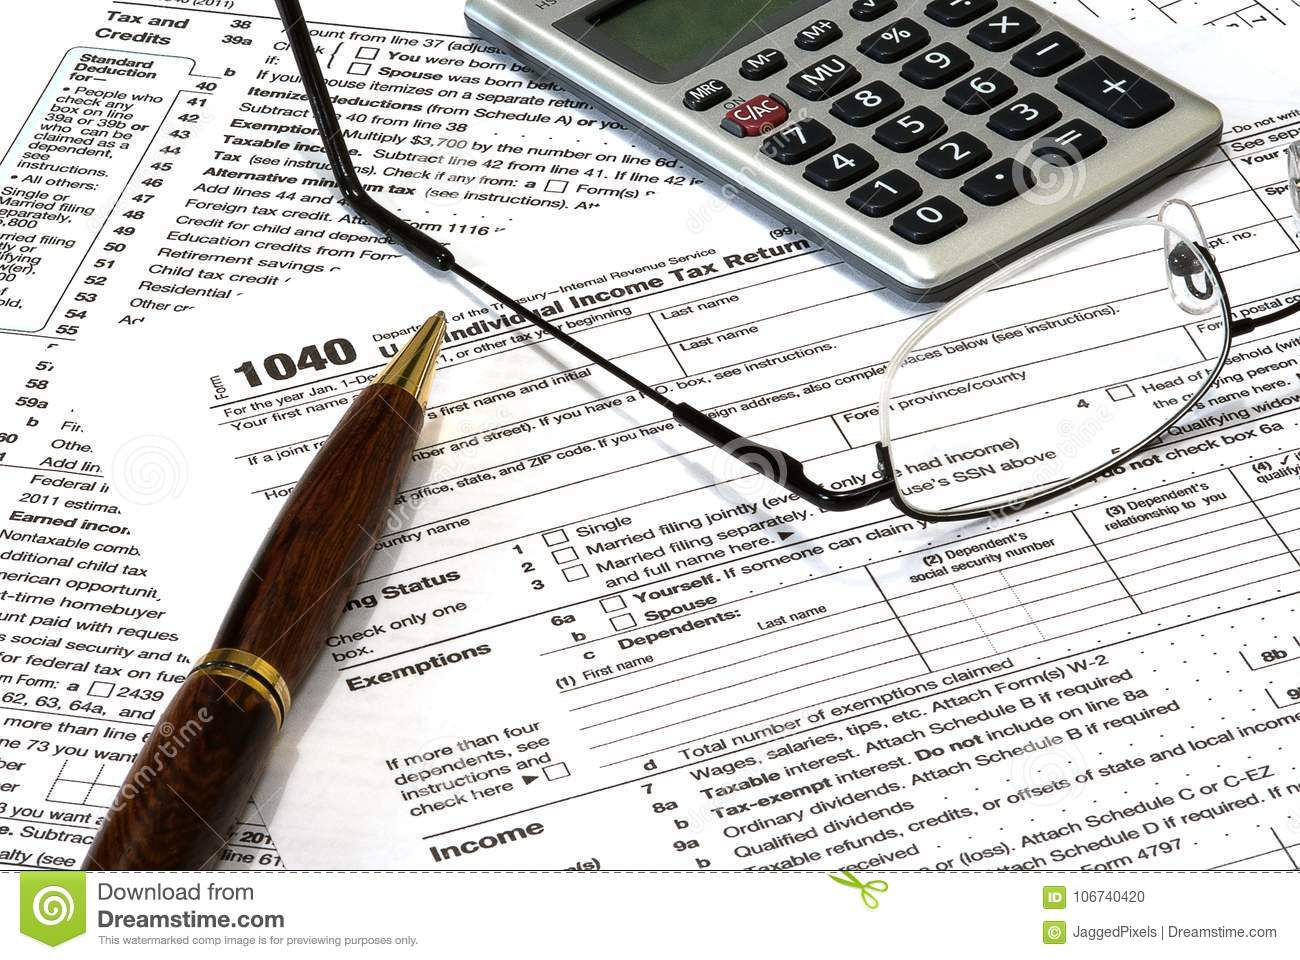 Foreign tax credit & irs form 1116 explained greenback expat taxes.